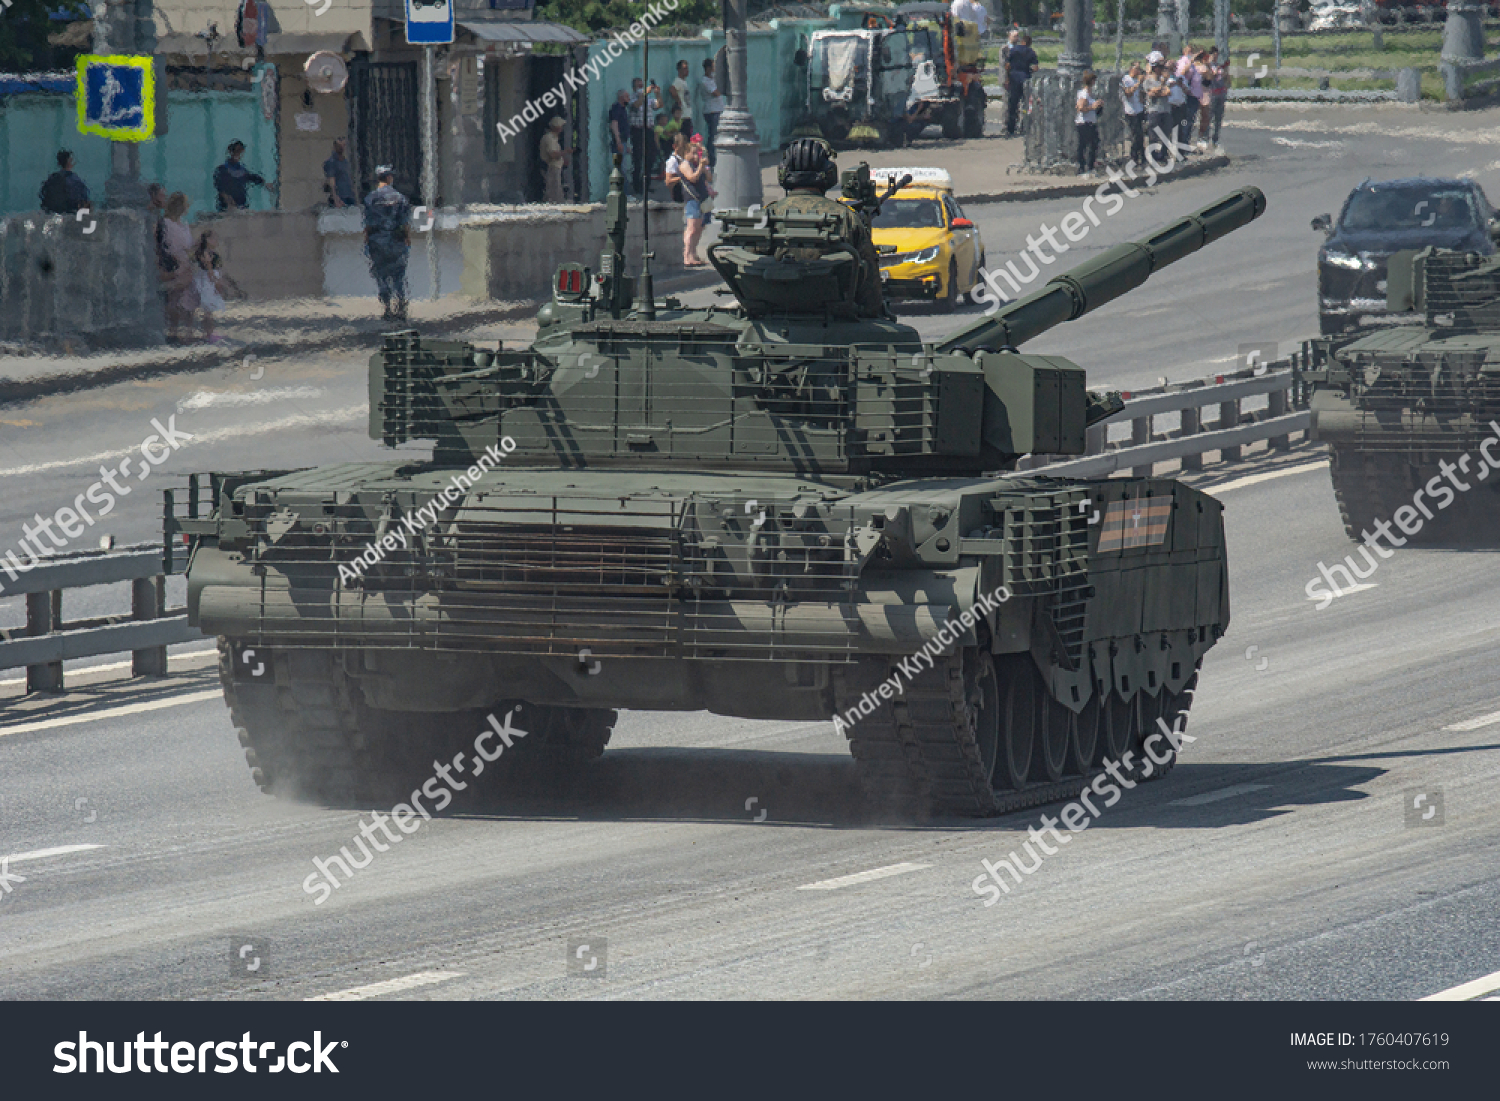 https://image.shutterstock.com/z/stock-photo-june-moscow-russia-the-the-t-bvm-tank-returns-after-participating-in-the-rehearsal-of-1760407619.jpg